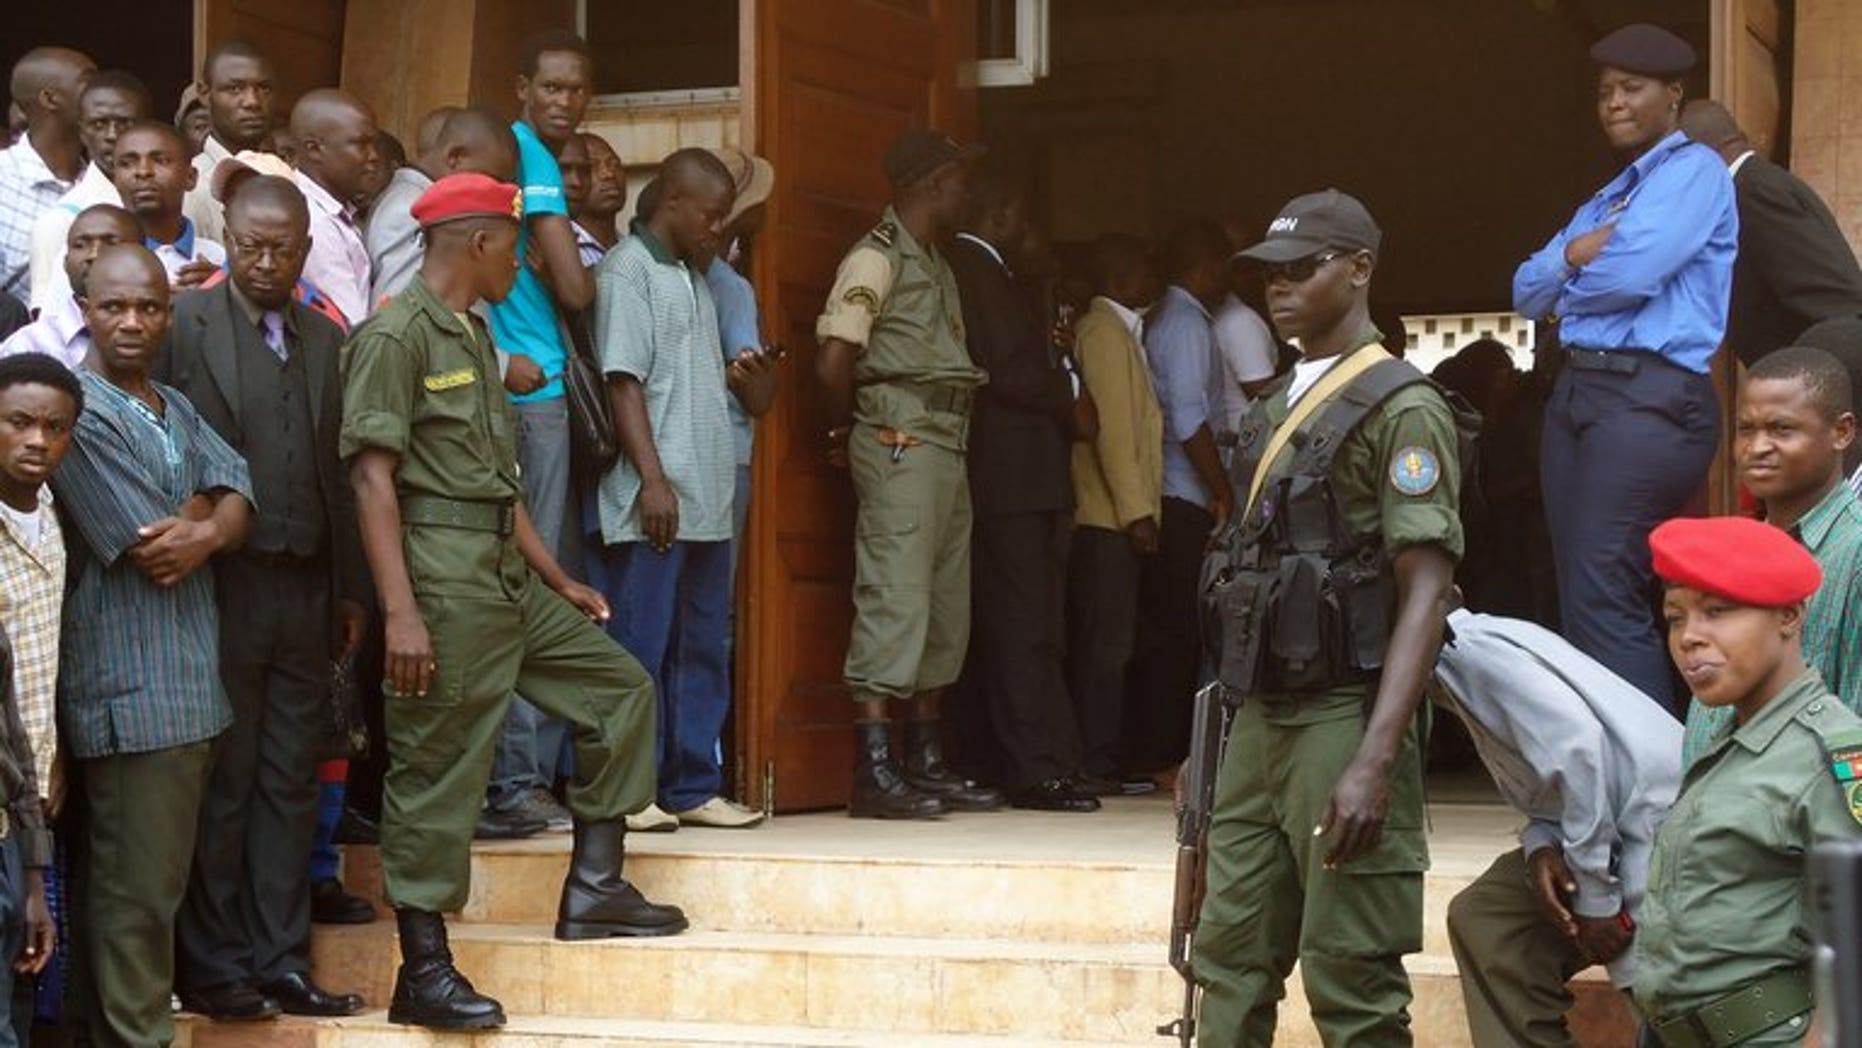 Policemen stand at the entrance of a court in Yaounde on July 16, 2012. A Cameroonian court has sentenced a former health minister to 20 years in prison for corruption over a fake contract to deliver mosquito nets to hospitals, legal sources said.